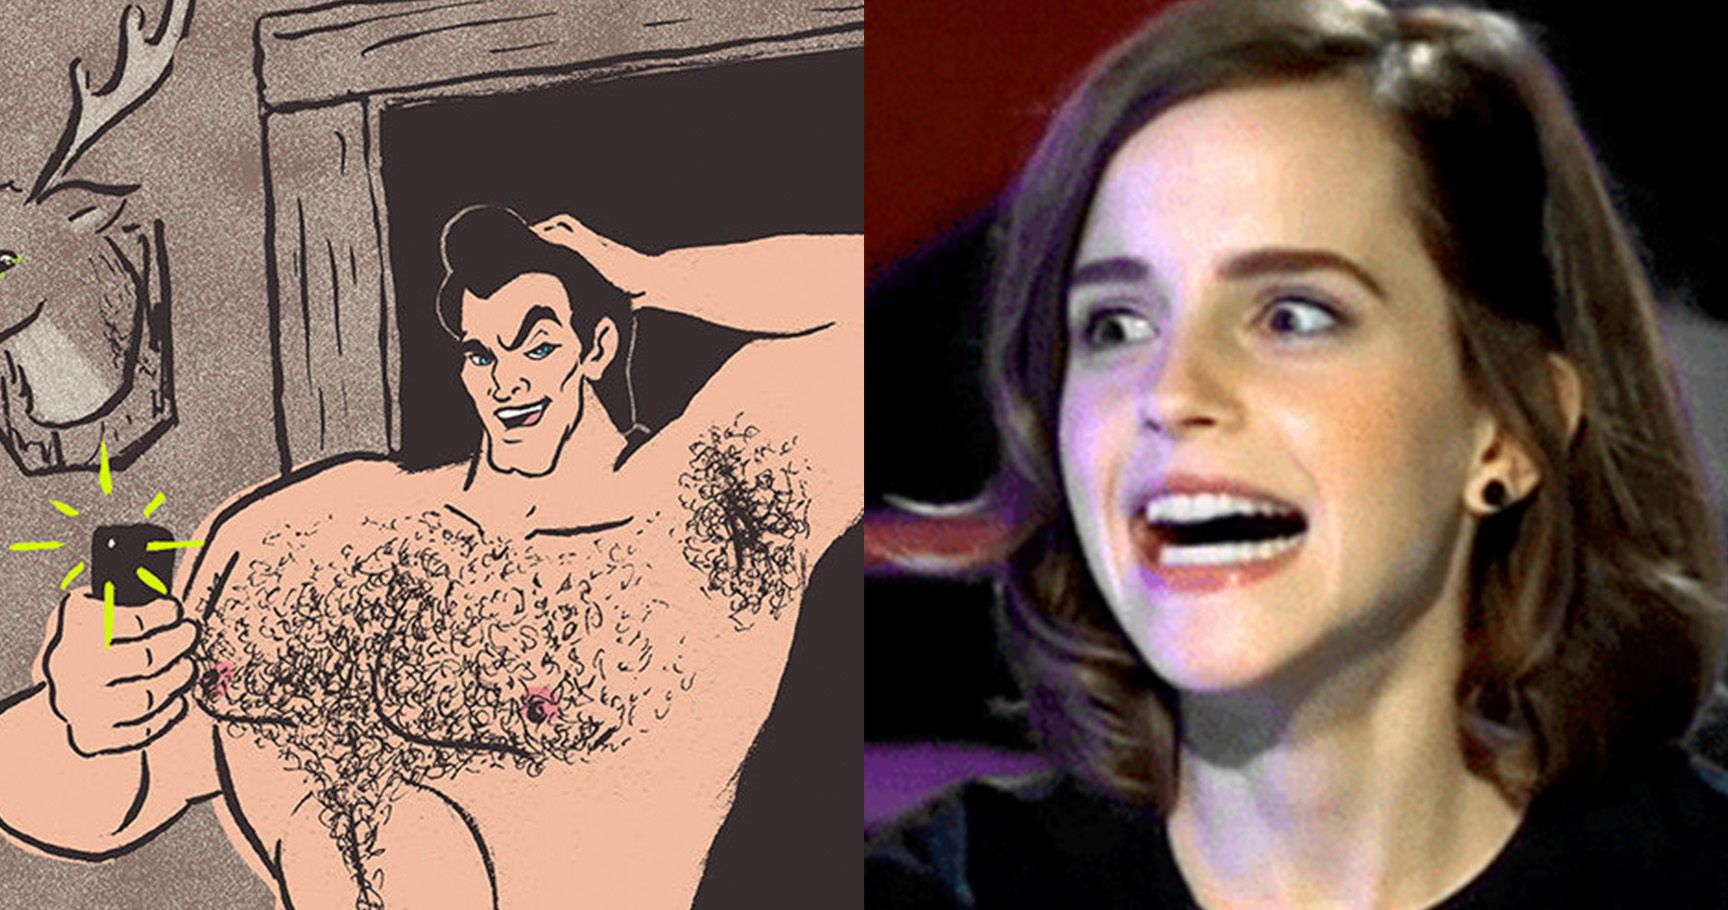 15 Disturbing Times Adults Ruined Disney